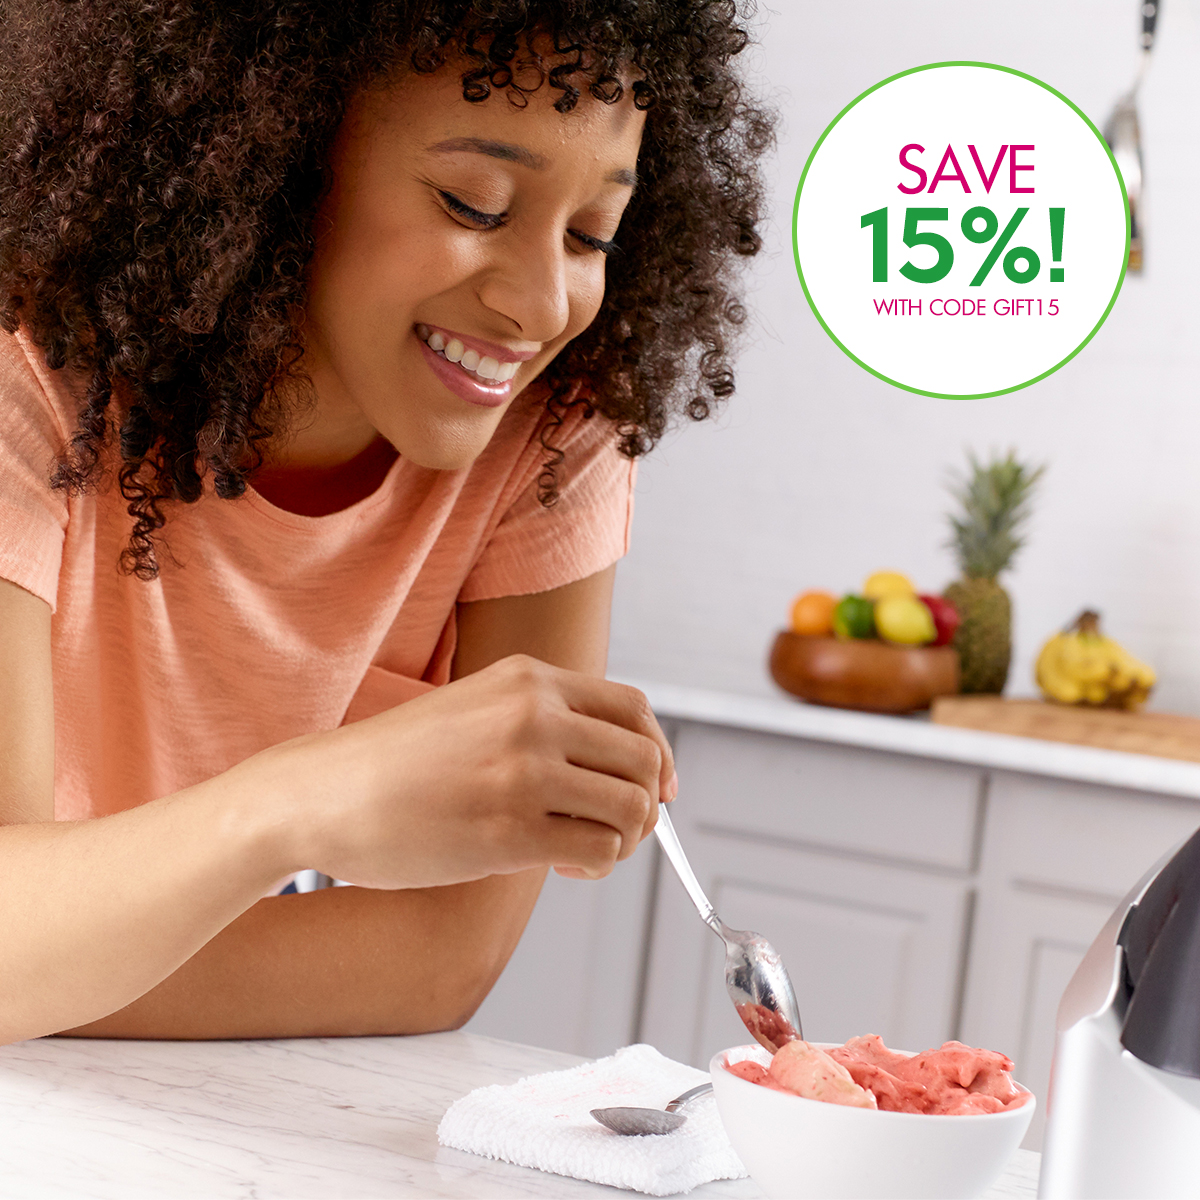 The Perfect Gift? Healthy Dessert! Yonanas transforms FRUIT into delicious soft-serve in seconds! Save 15% now with code GIFT15. Shop now: https://t.co/2mCVCrRUgF https://t.co/tYnrfKi8mY